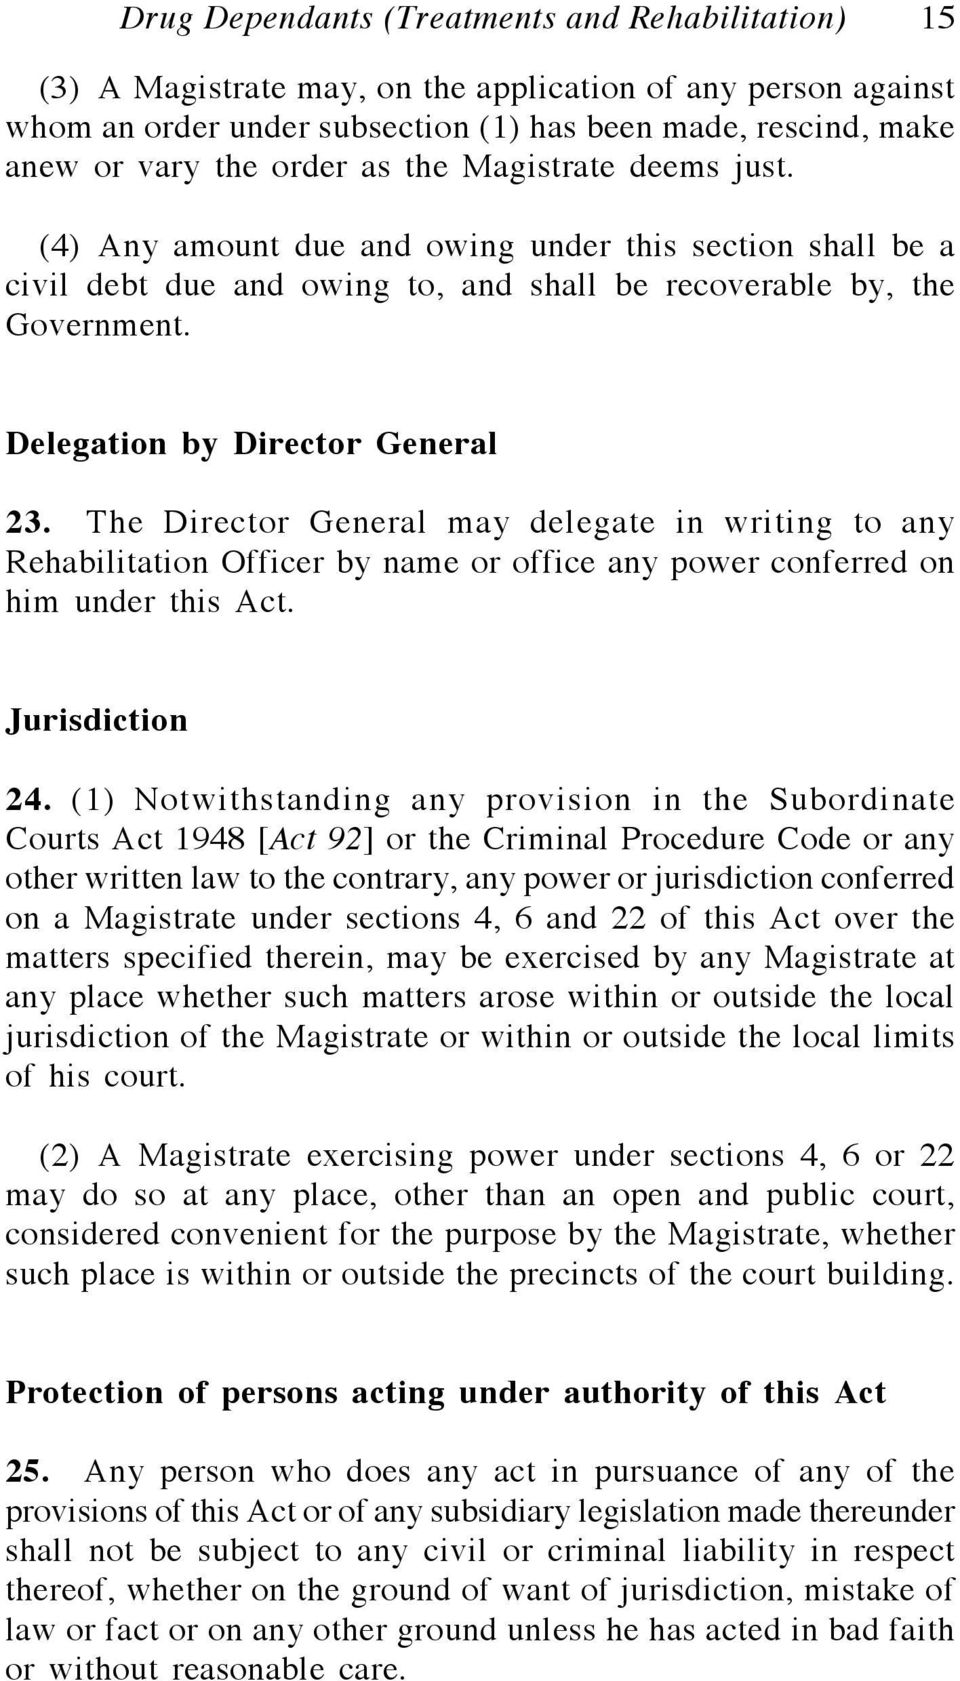 Delegation by Director General 23. The Director General may delegate in writing to any Rehabilitation Officer by name or office any power conferred on him under this Act. Jurisdiction 24.